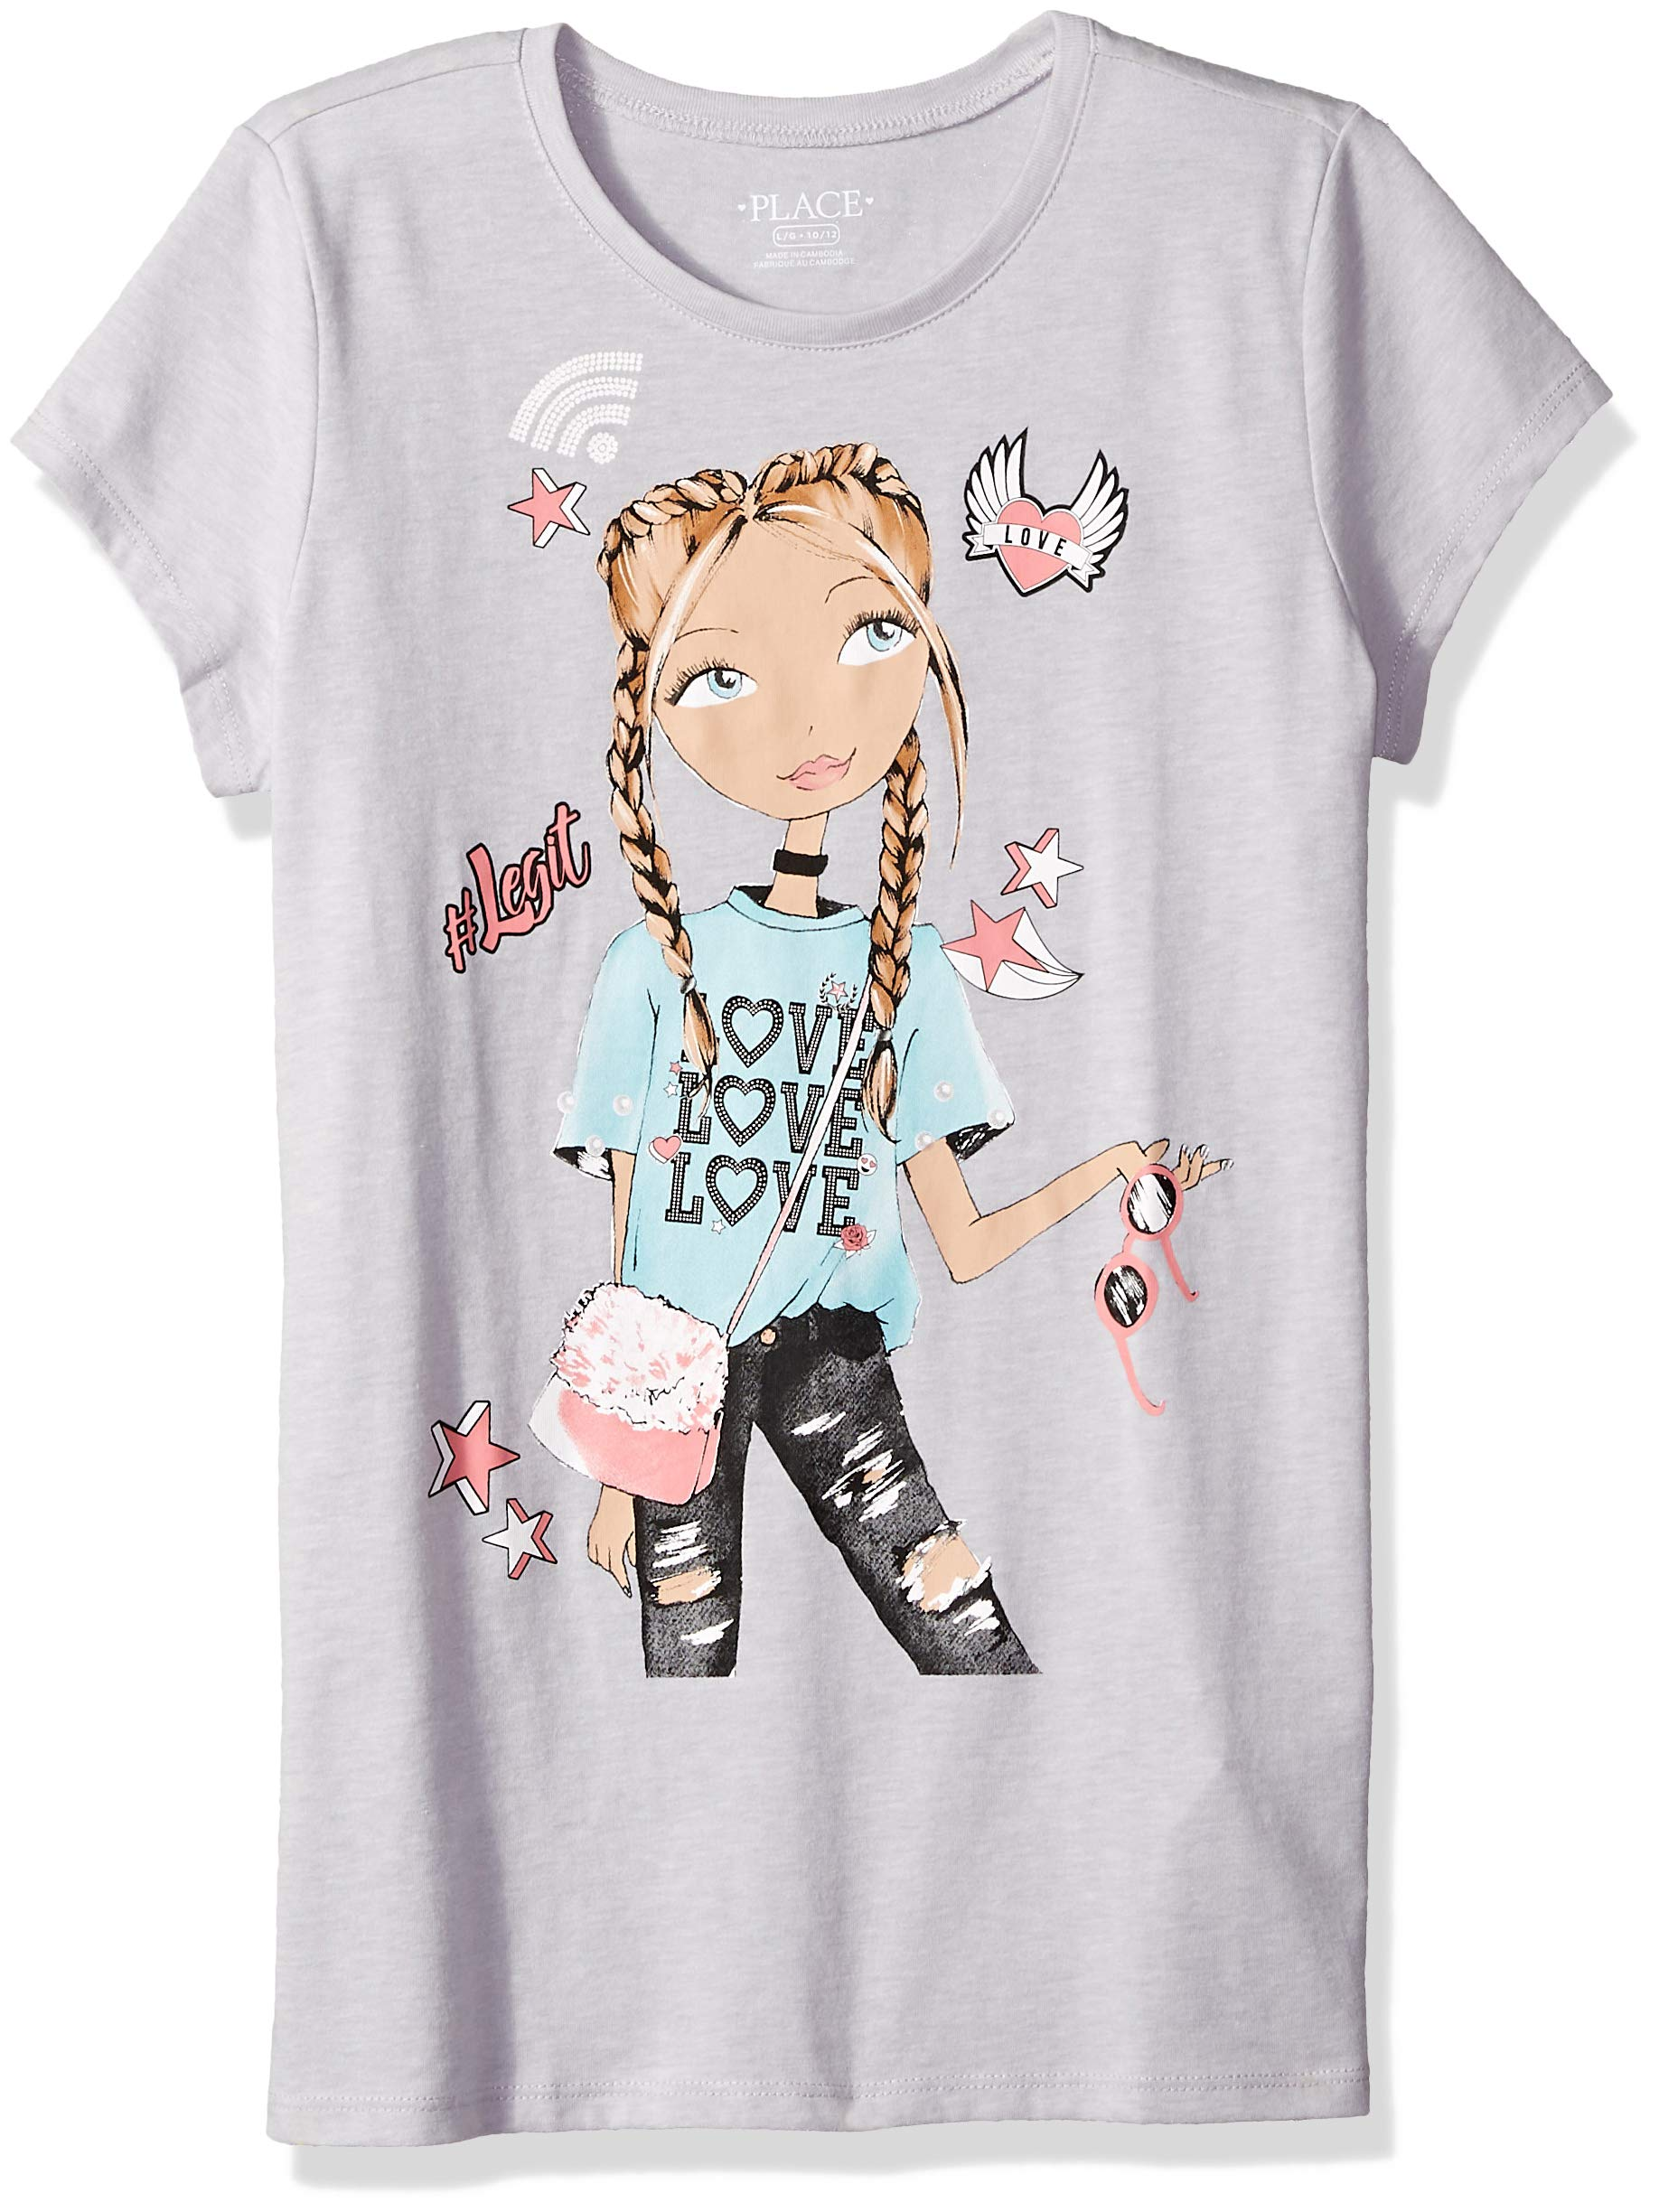 The Children's Place Big Girls' Short Sleeve Graphic Tees, Sample/dye ice cave, XS (4)